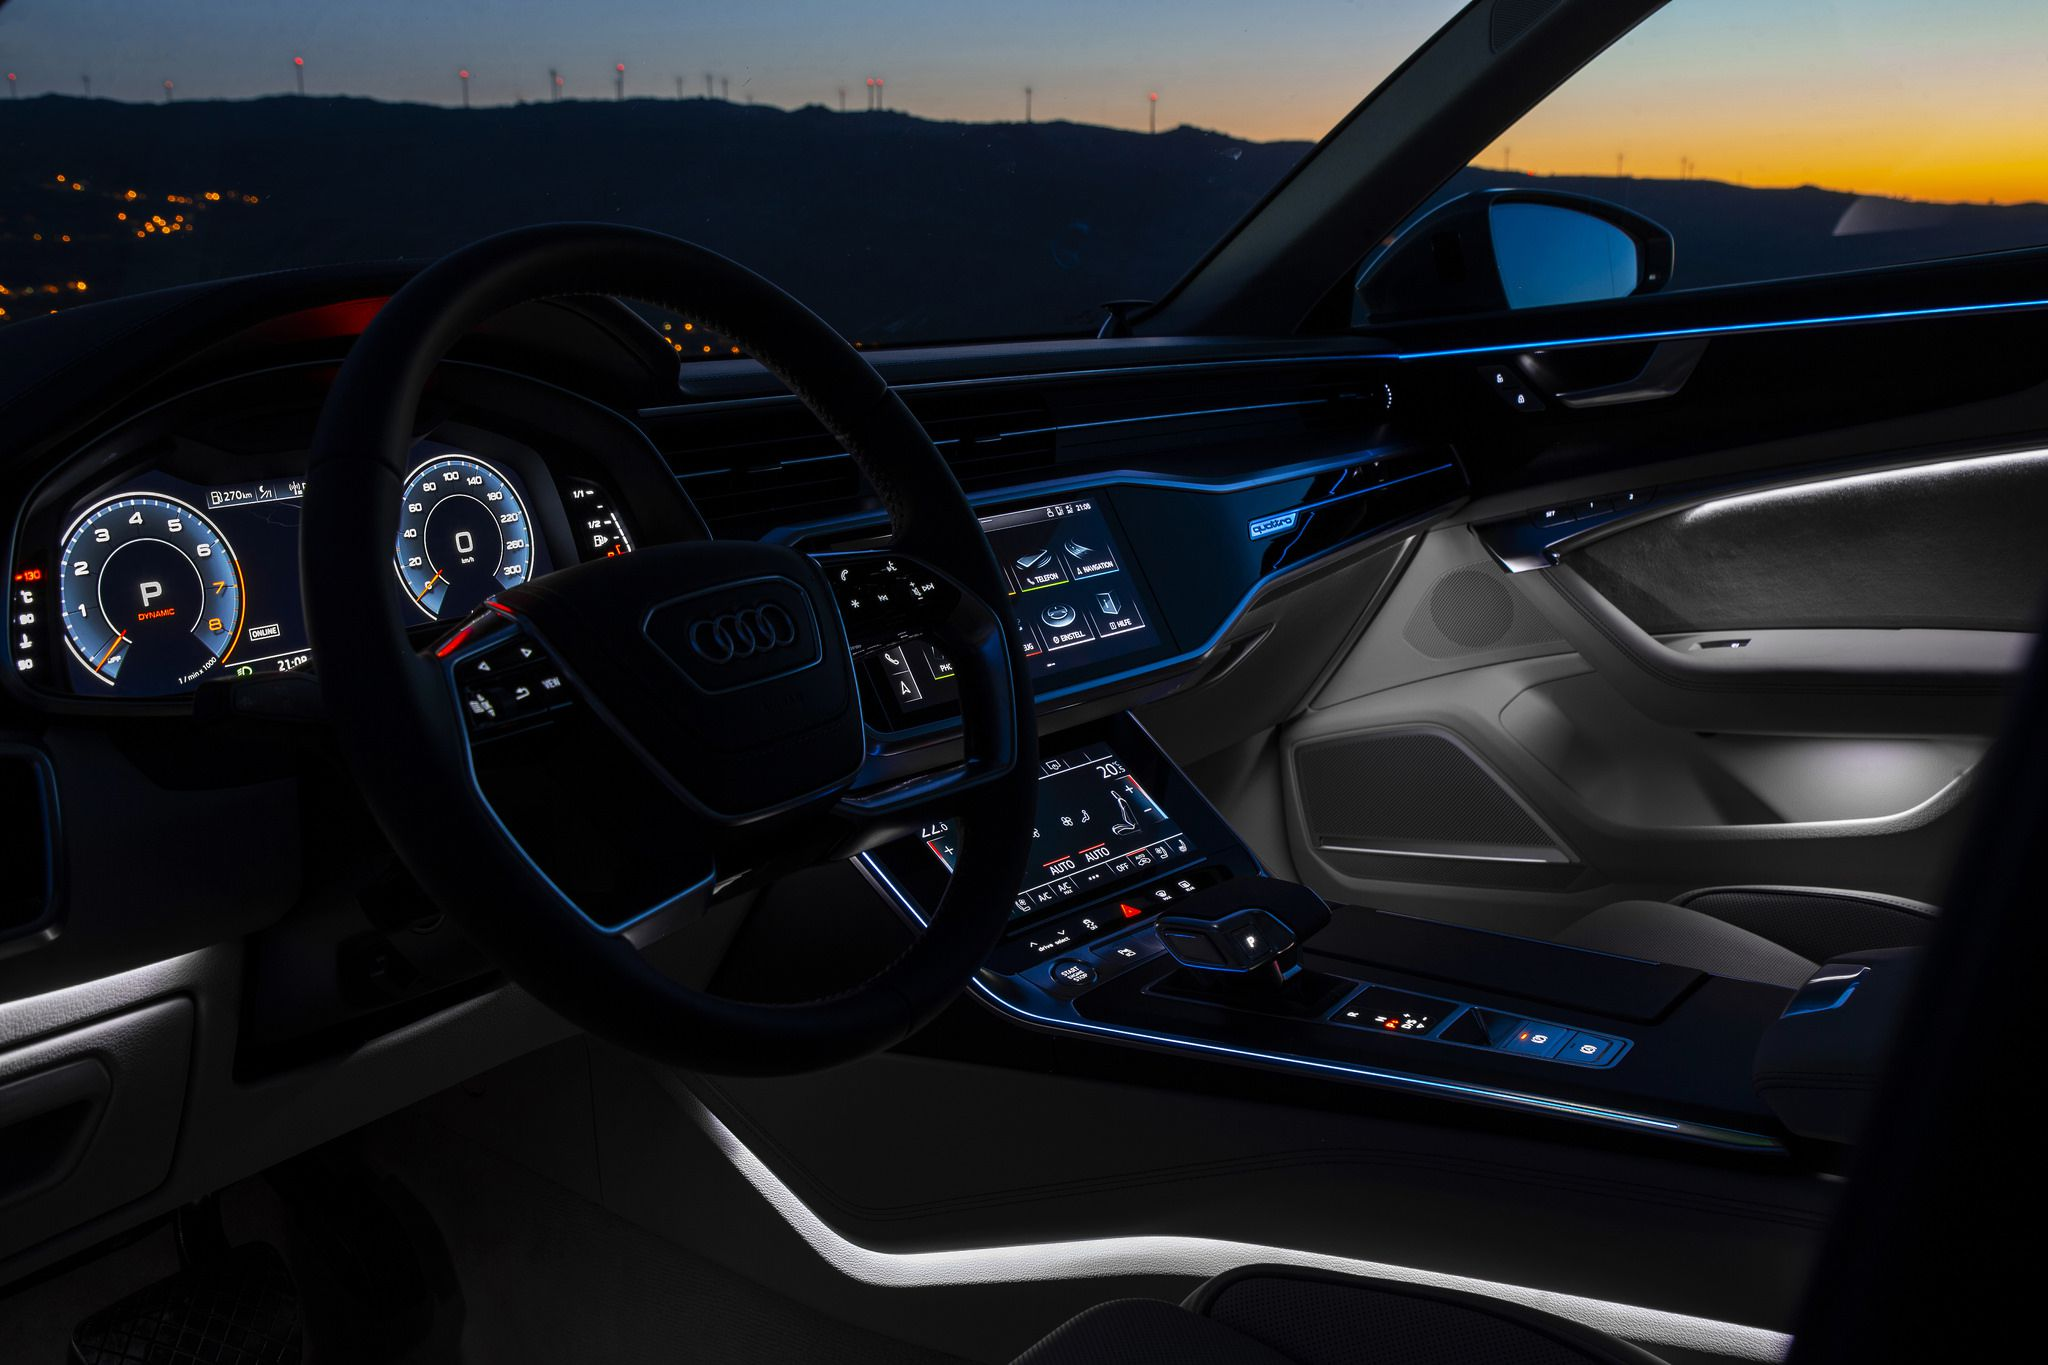 19 Audi A6 2019 wallpapers in HD